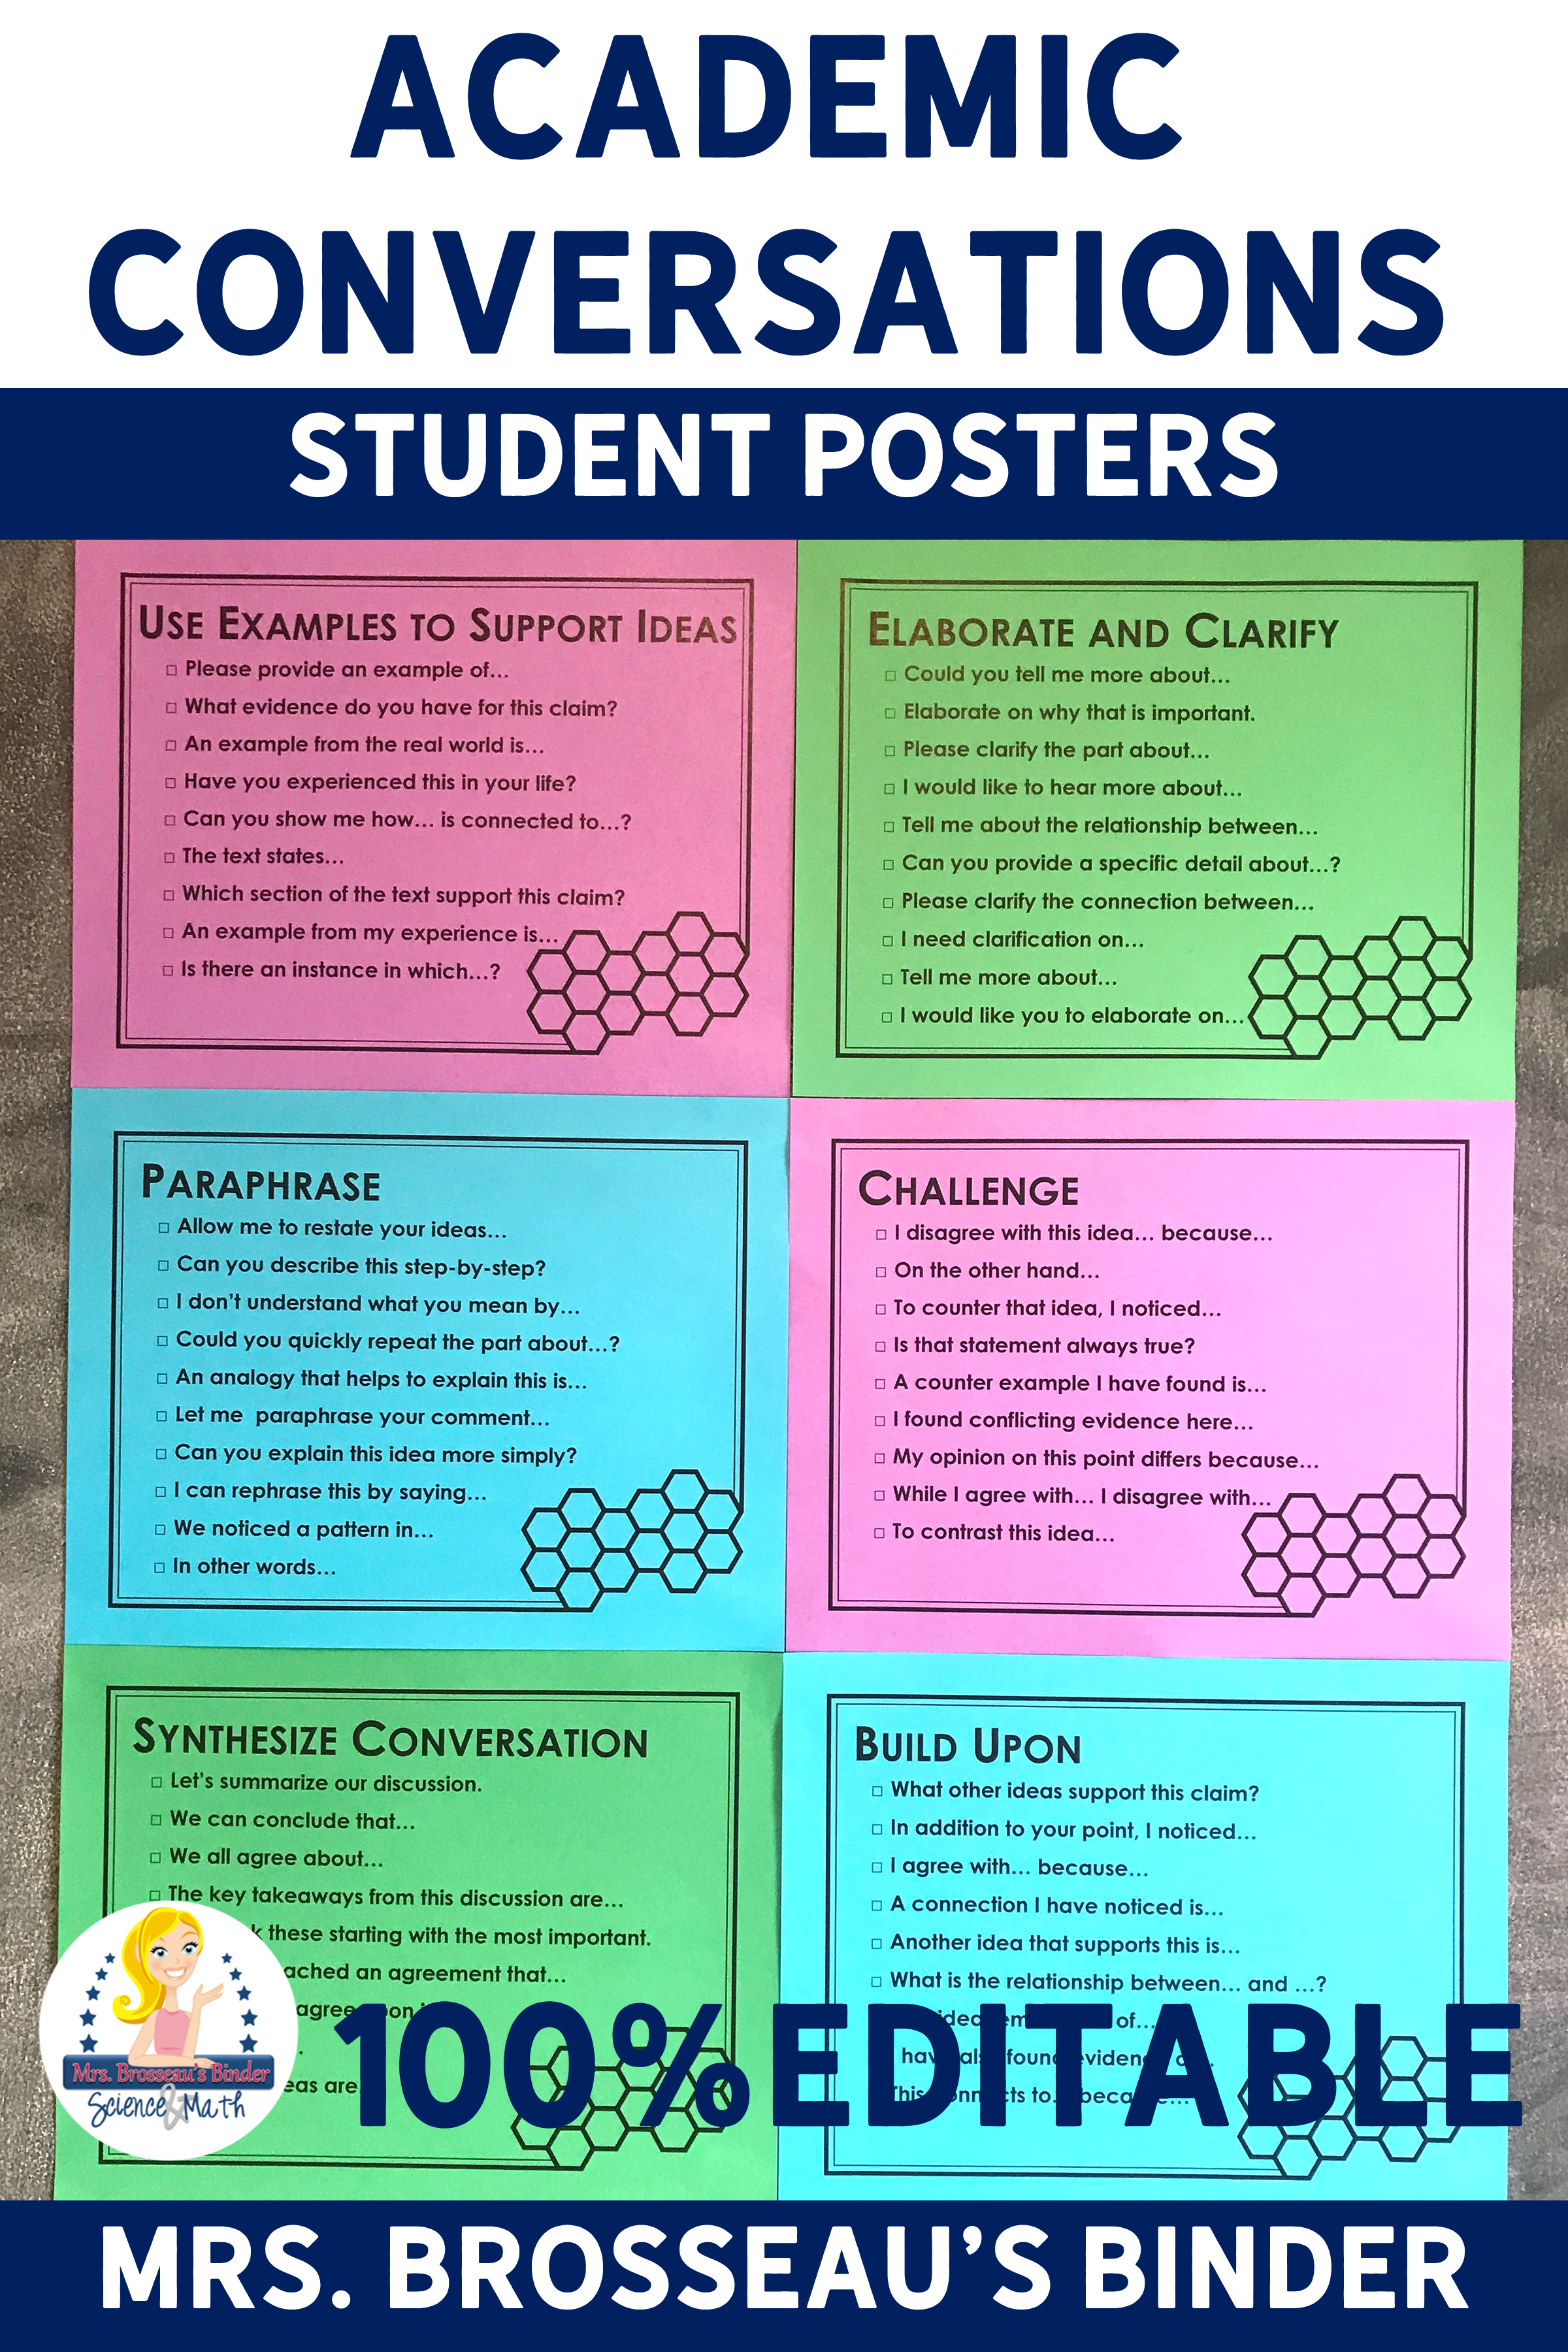 Academic Conversation Poster Prompt For Socratic Seminar Accountable Talk Prompts Paraphrase The Following Statement Do You Agree Or Disagree